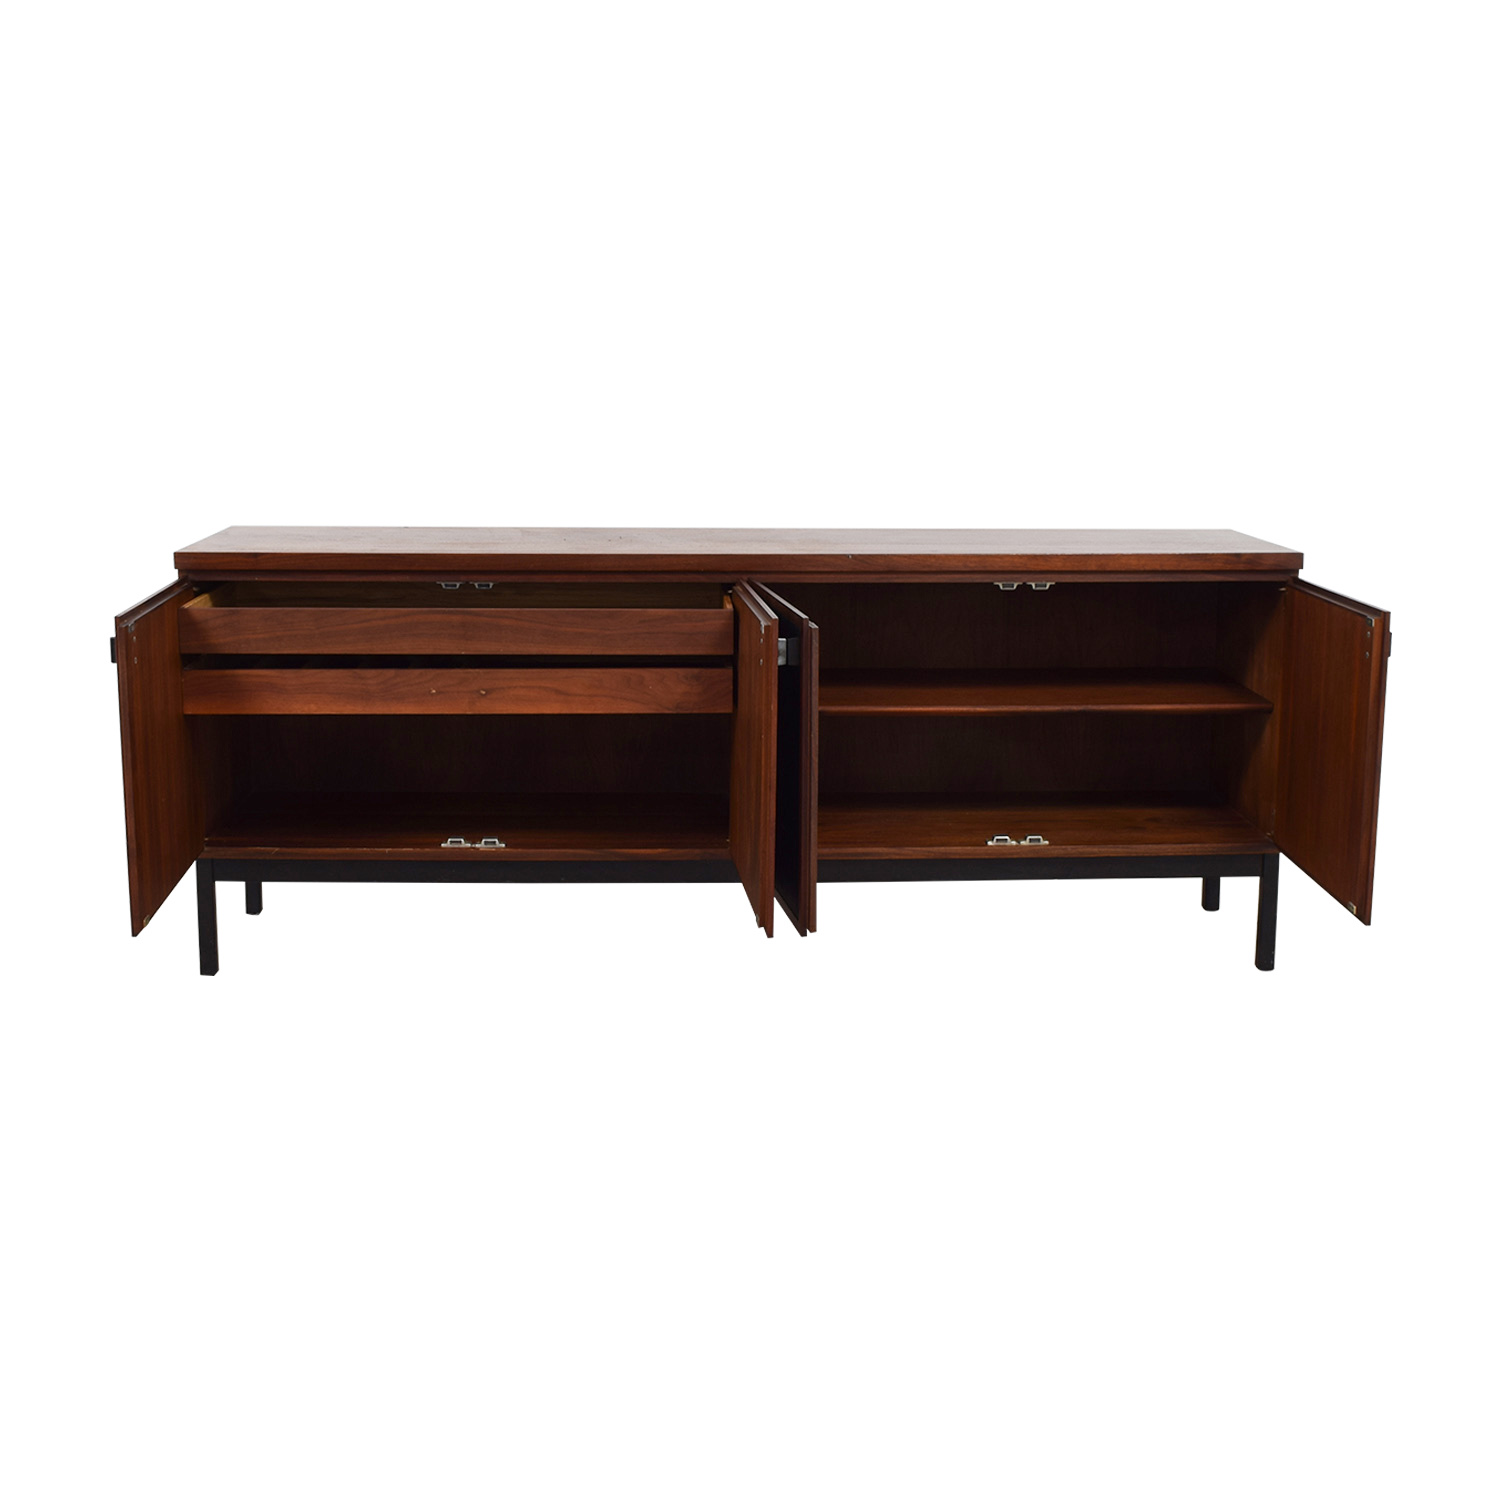 Mid Century Modern Cherry Wood and Black Leather Credenza discount